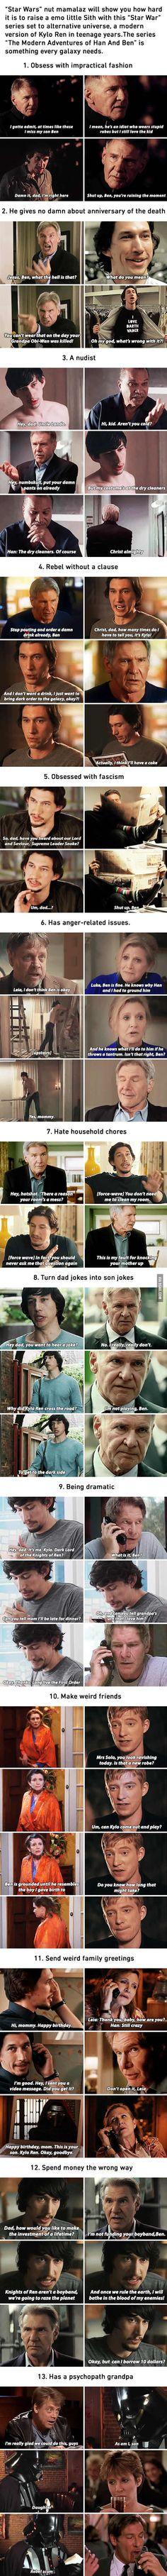 Viral pictures of the day: The Modern Adventures Of Han Solo And Kylo Ren Are The Show Every Galaxy Needs (By Mamalaz)